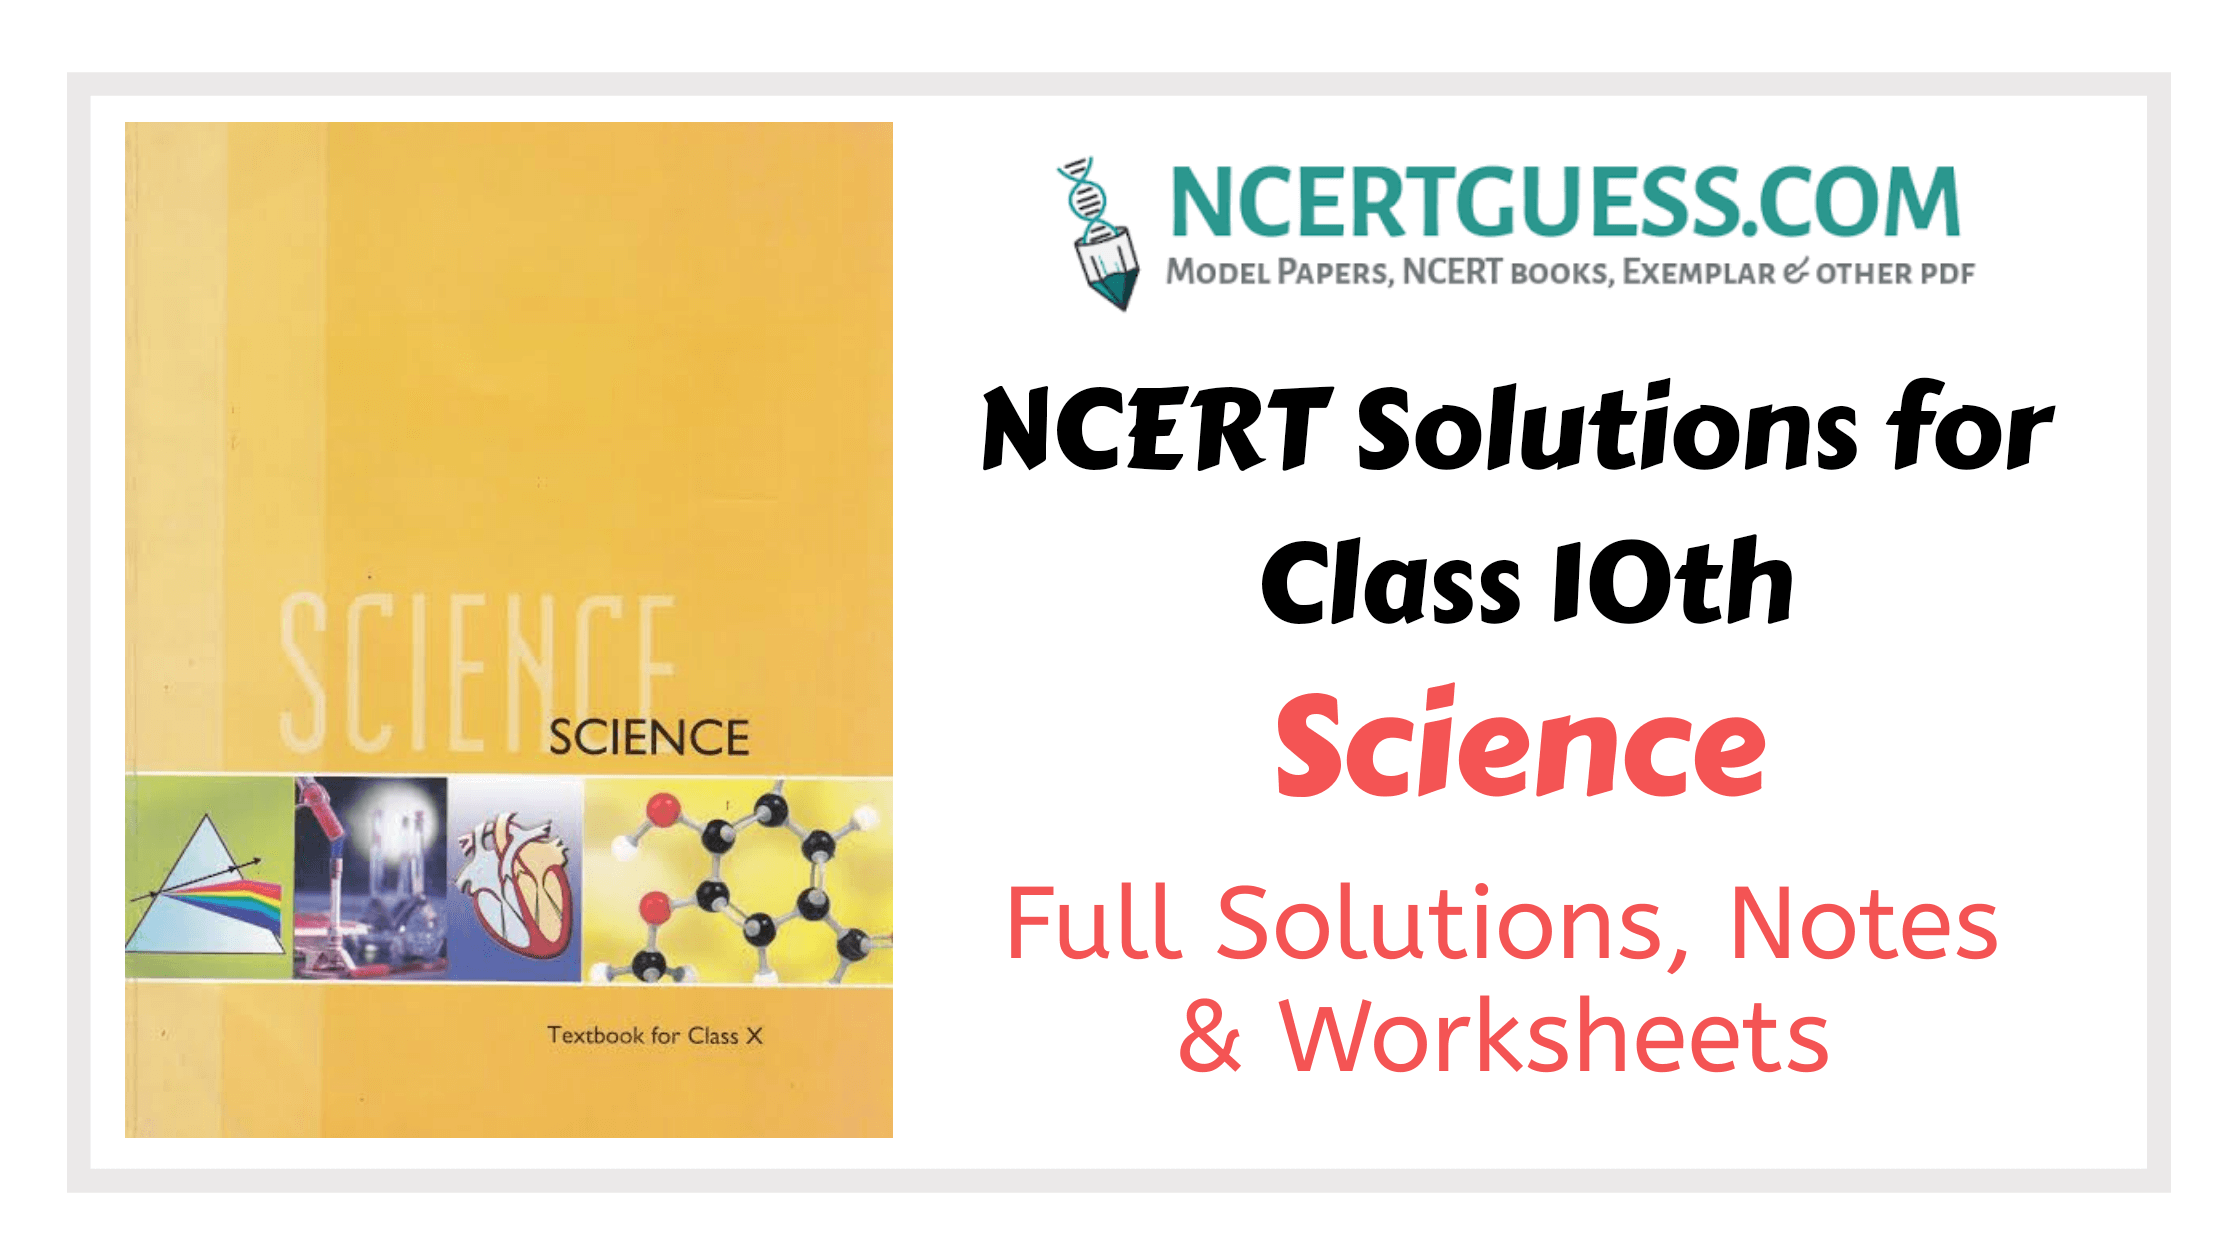 10th Science